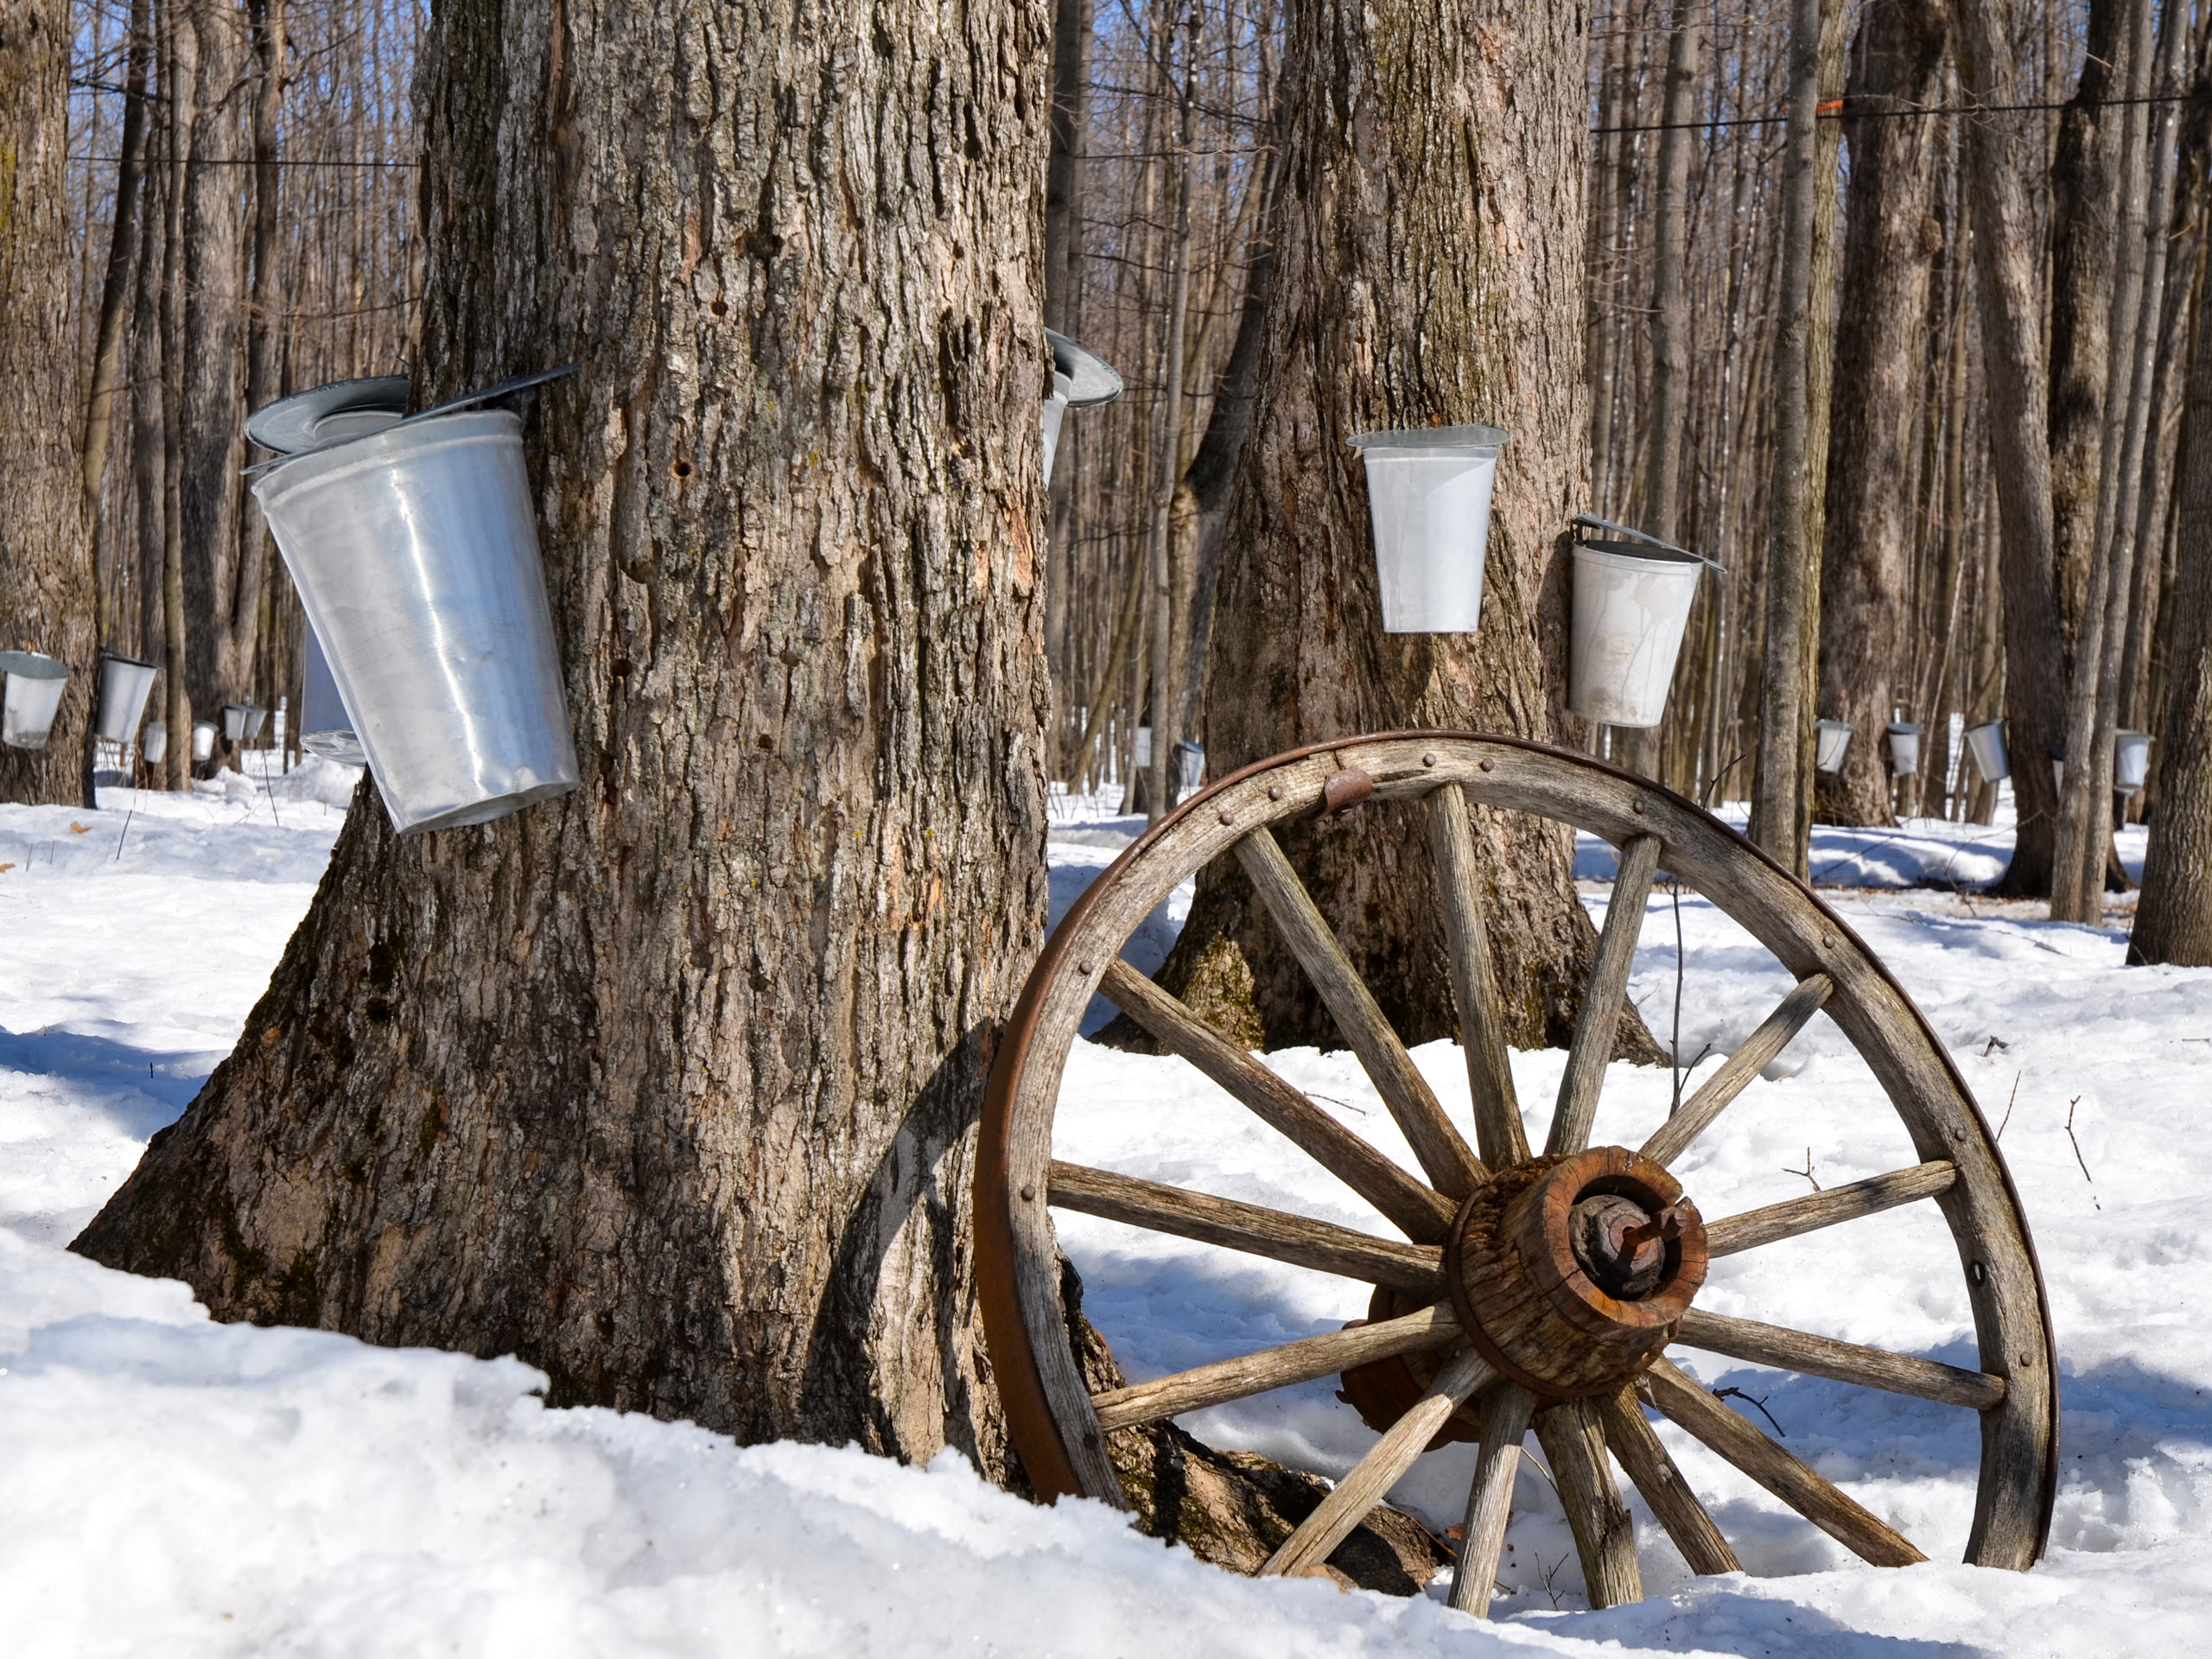 Sugar Shack Quebec traditional maple syrup making